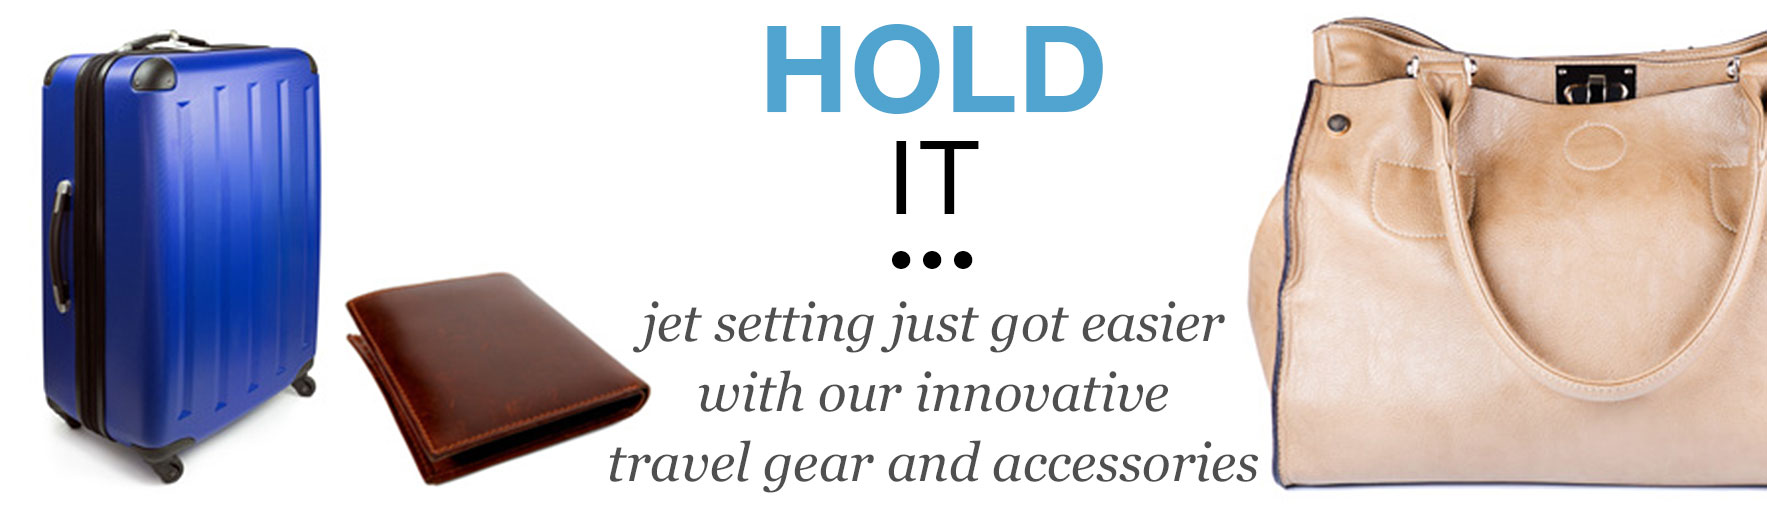 Hold It - Jet setting just got easier with our innovative travel gear and accessories